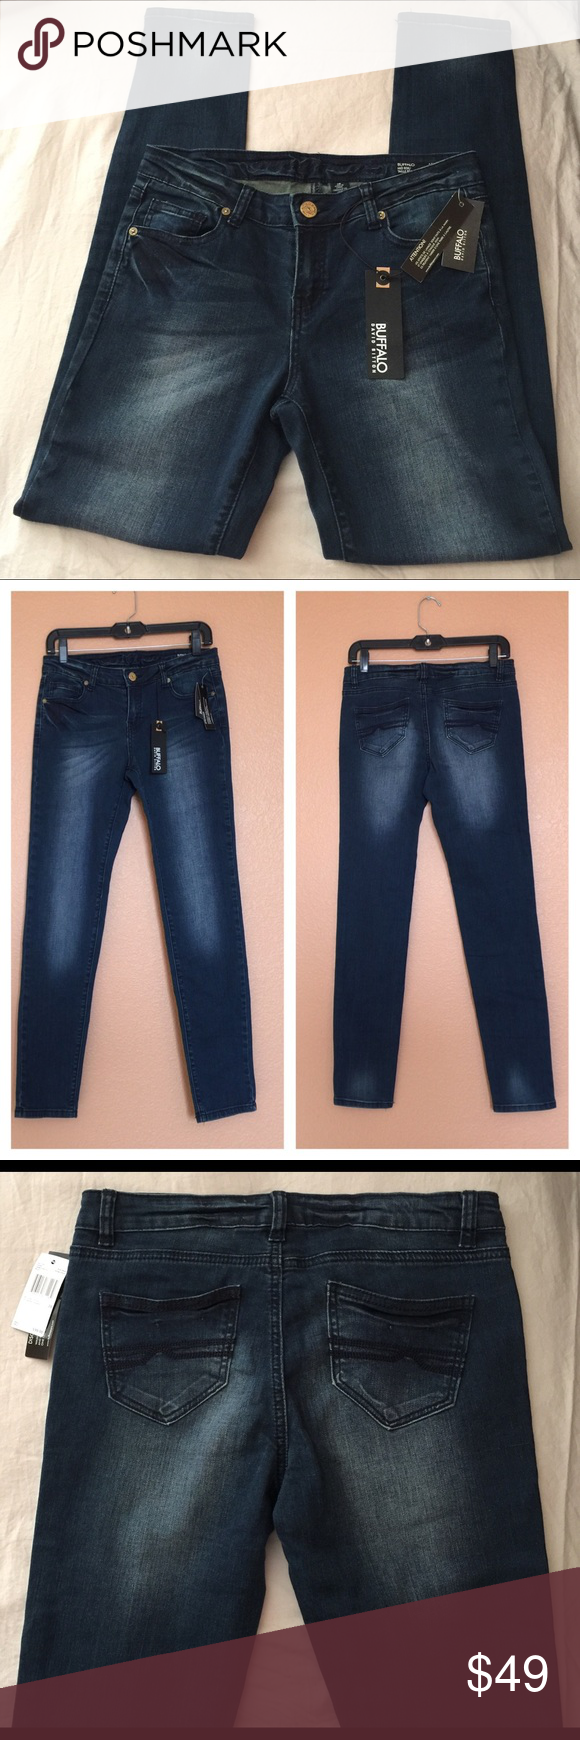 BUFFALO DAVID BITTON Mystery Mid Rise Skinny Siz28 NWT $99. Size 28 Buffalo Mystery Dark Wash Mid Rise Skinny Women's Jeans. 98% Cotton, 2% Spandex. Imported. Buffalo David Bitton Jeans Skinny